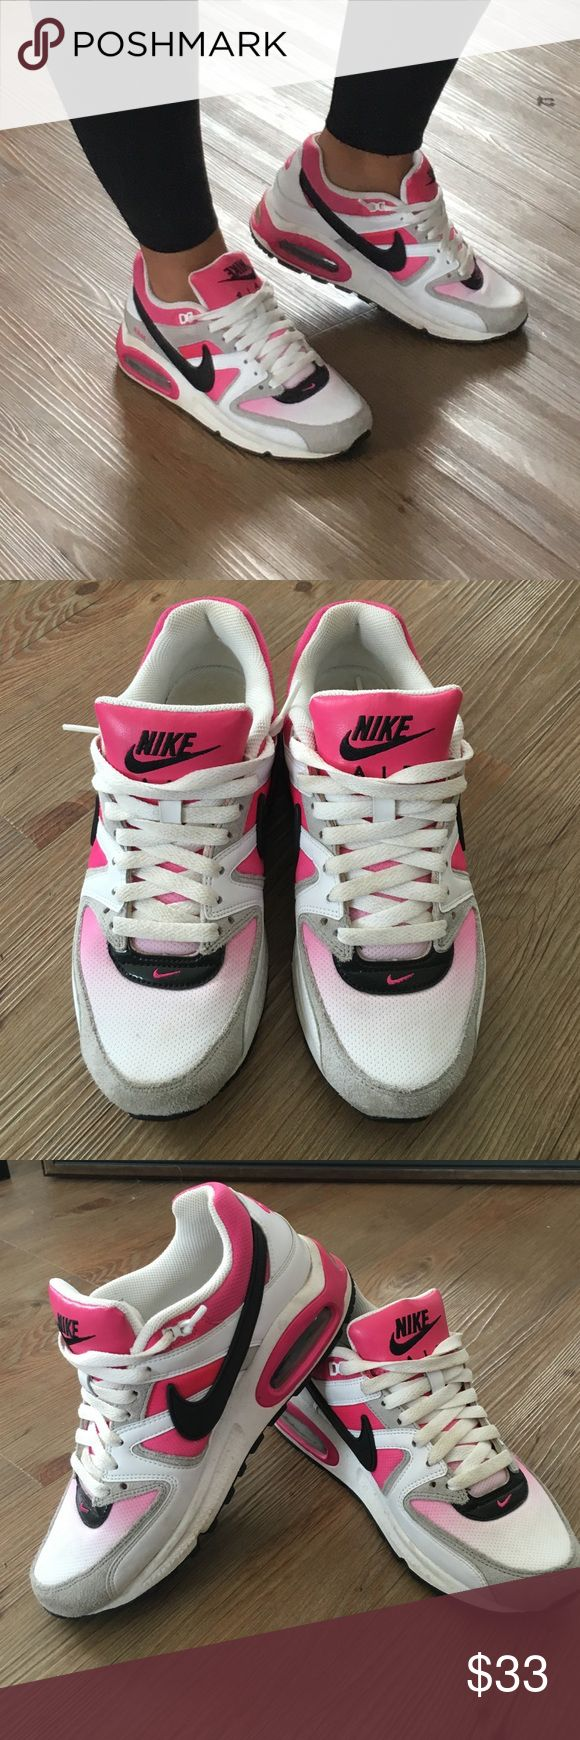 Nike Air Max Hot Pink, light pink, grey, white and black ladies Nike Air Max shoes SZ 7.  Worn only a few times and in great condition Nike Shoes Sneakers